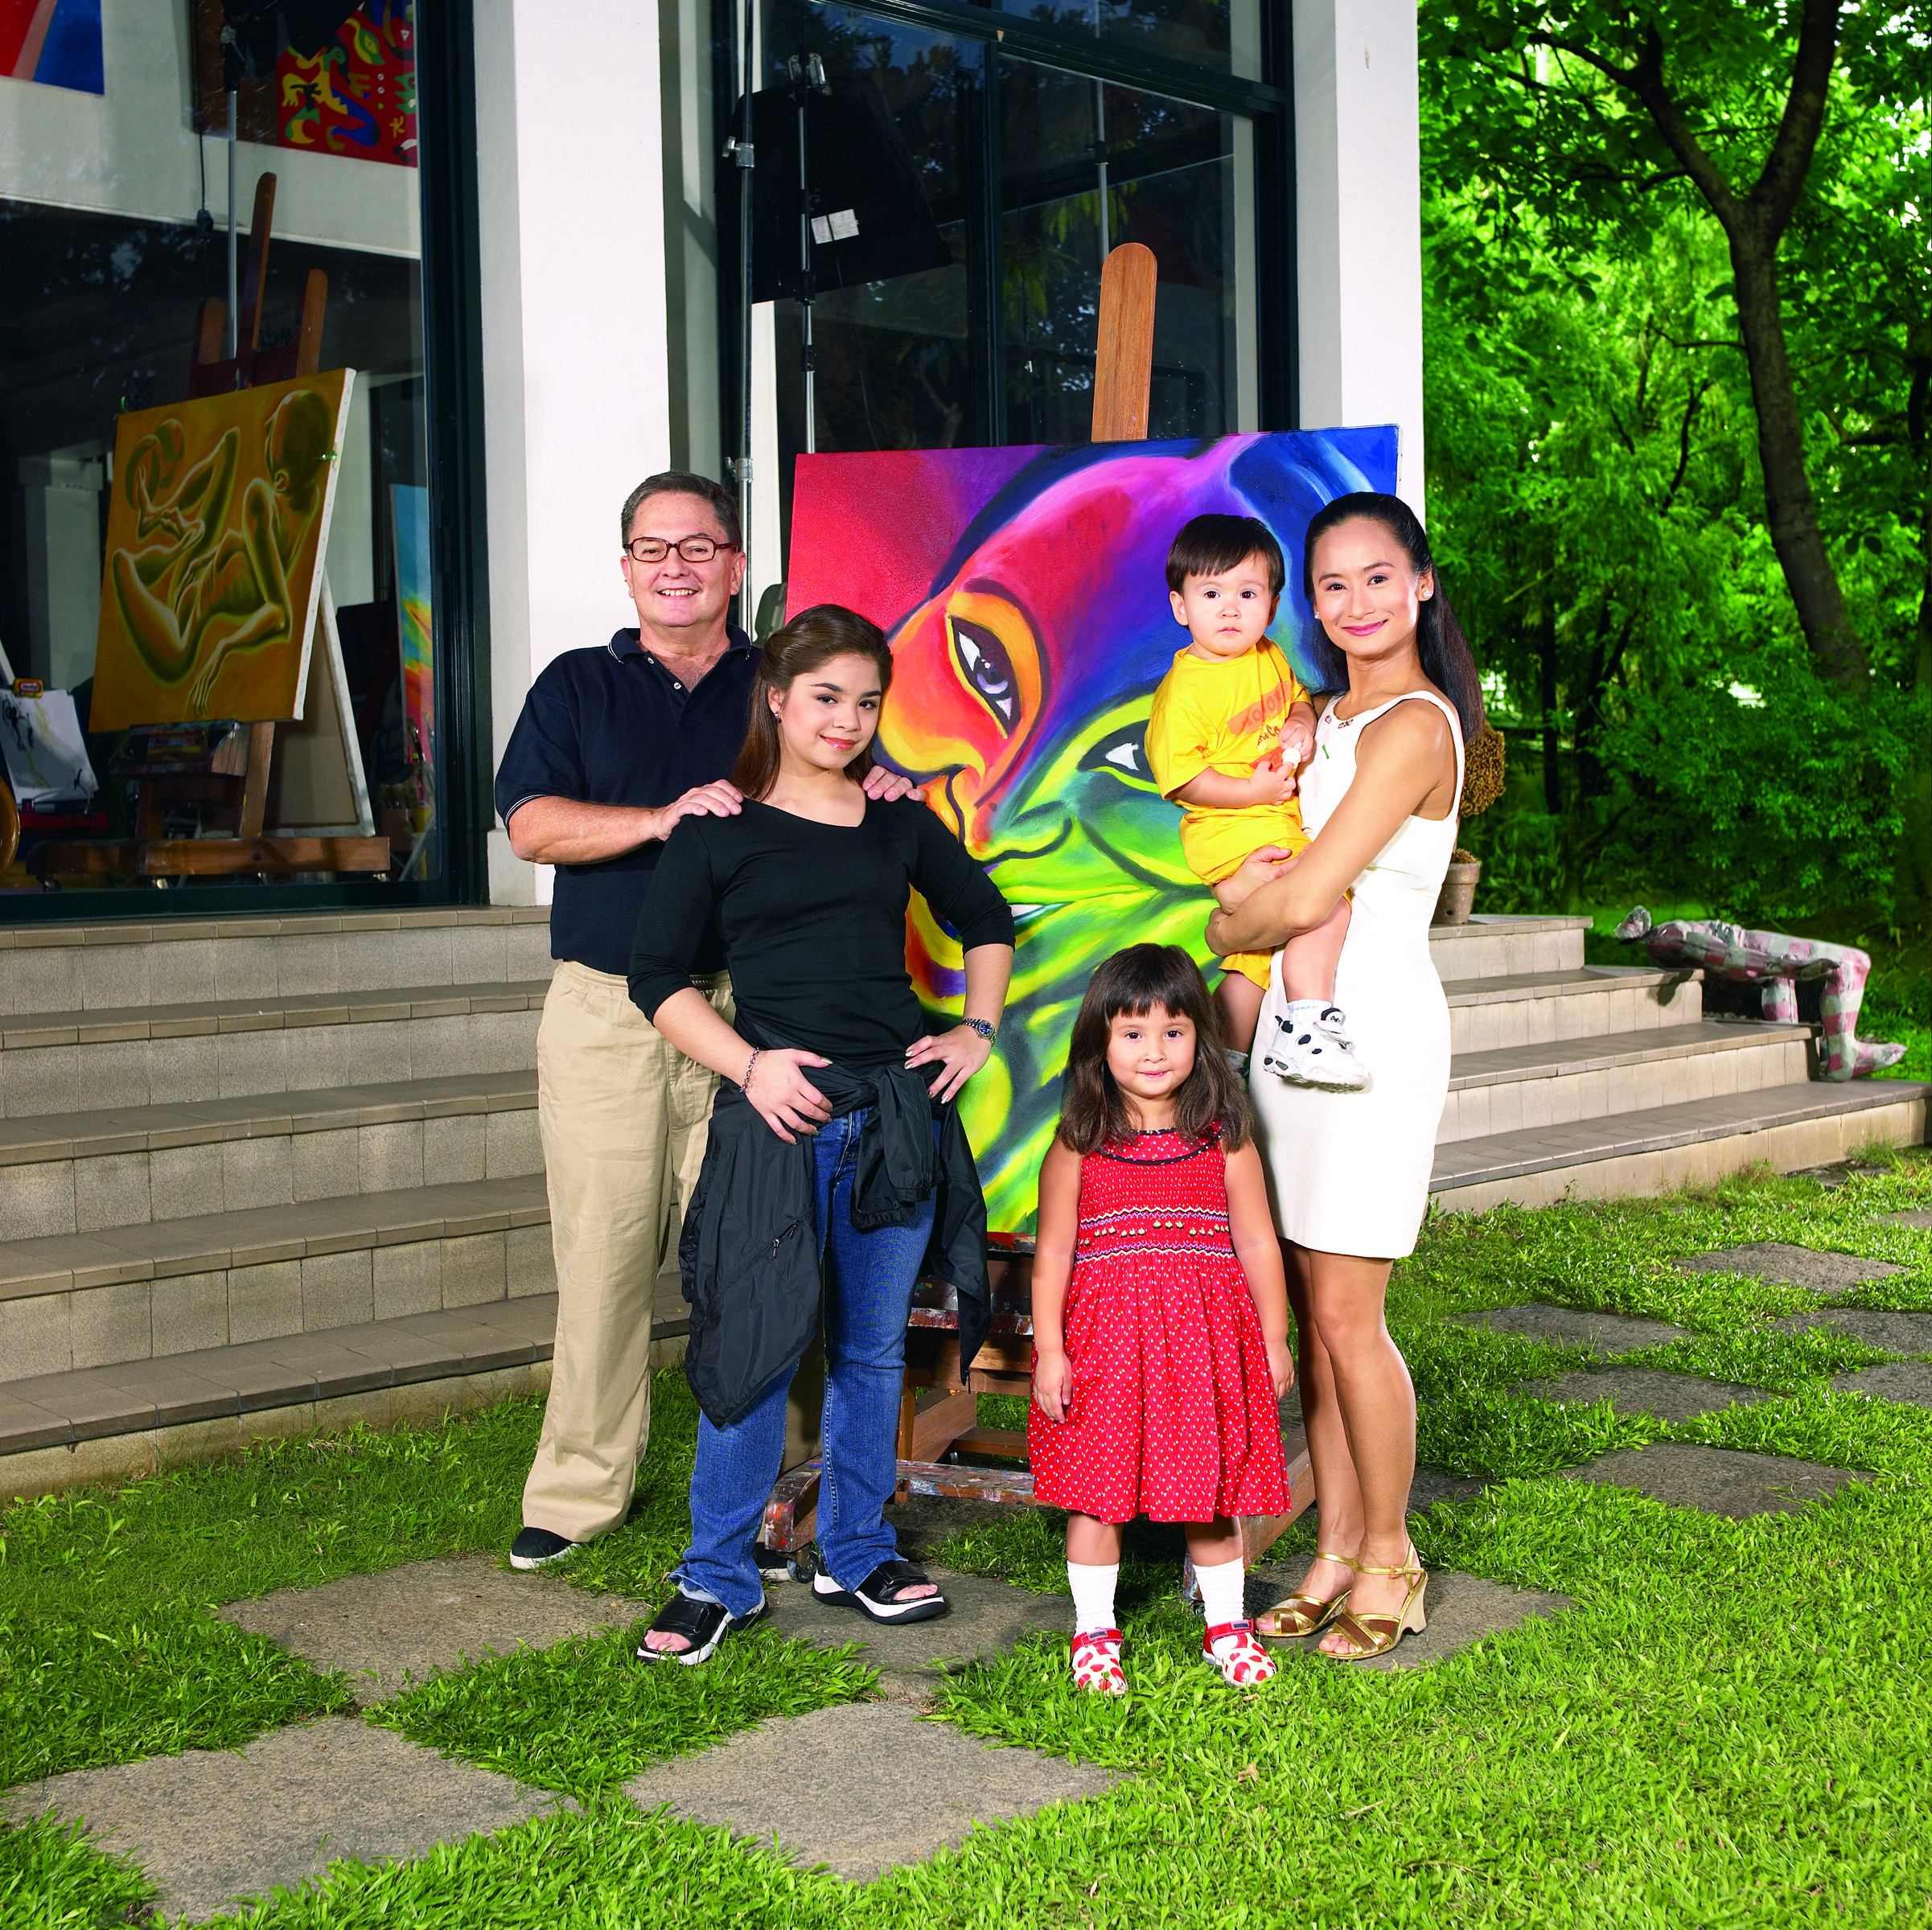 Fred has painted many works depicting Lisa, including the one shown in this family photo taken in 2002. With the couple are their children Sasha, Missy and Manuel.